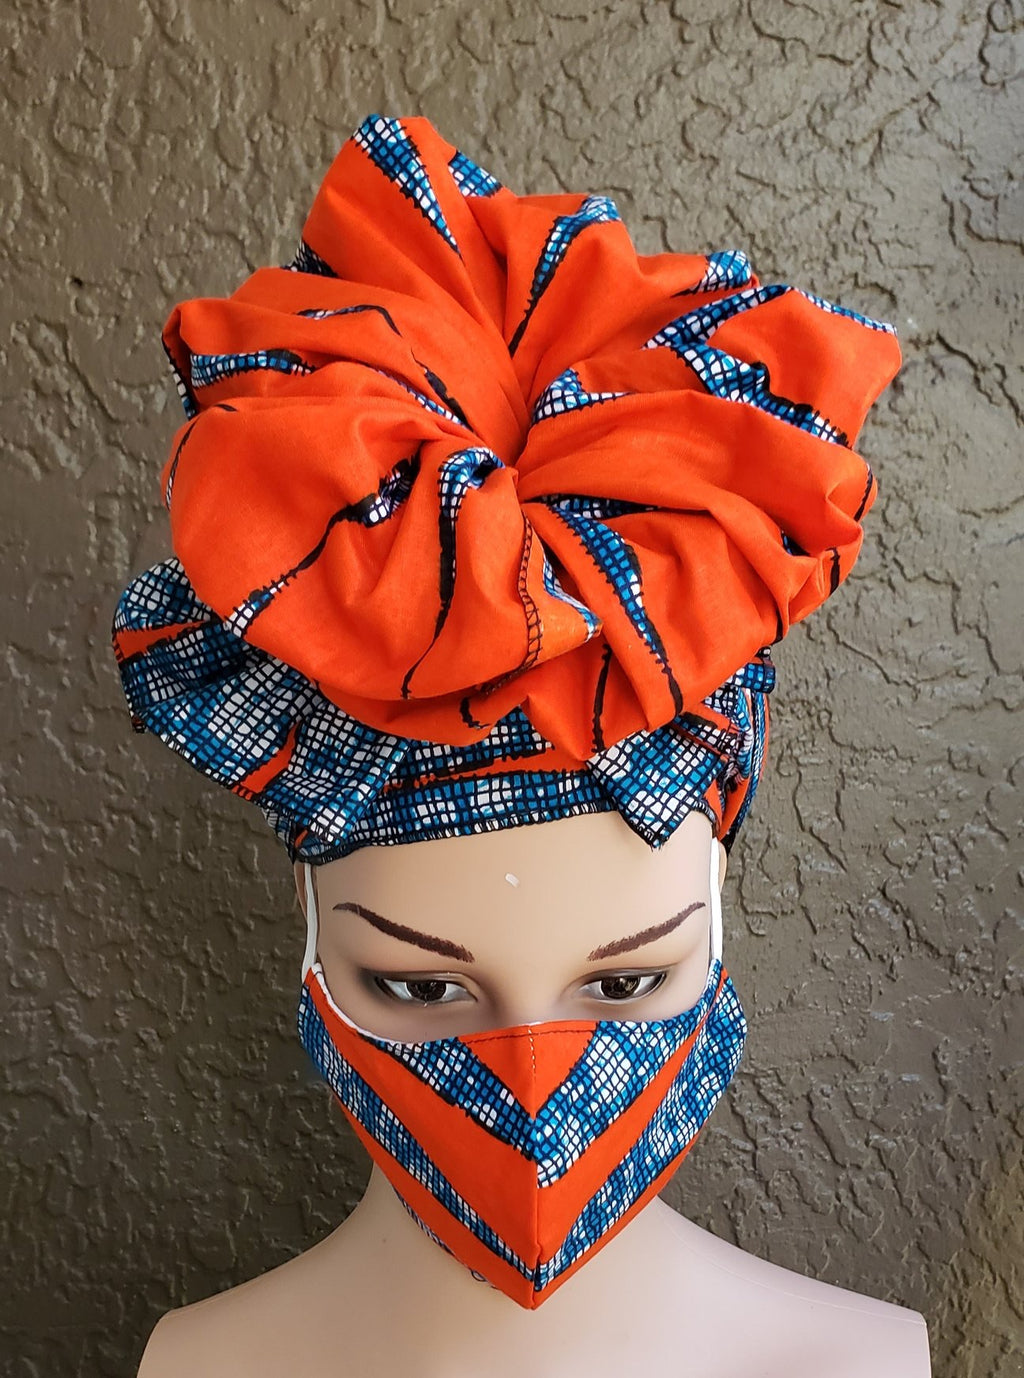 Fashion African Print Mask and Full Headwrap Orange